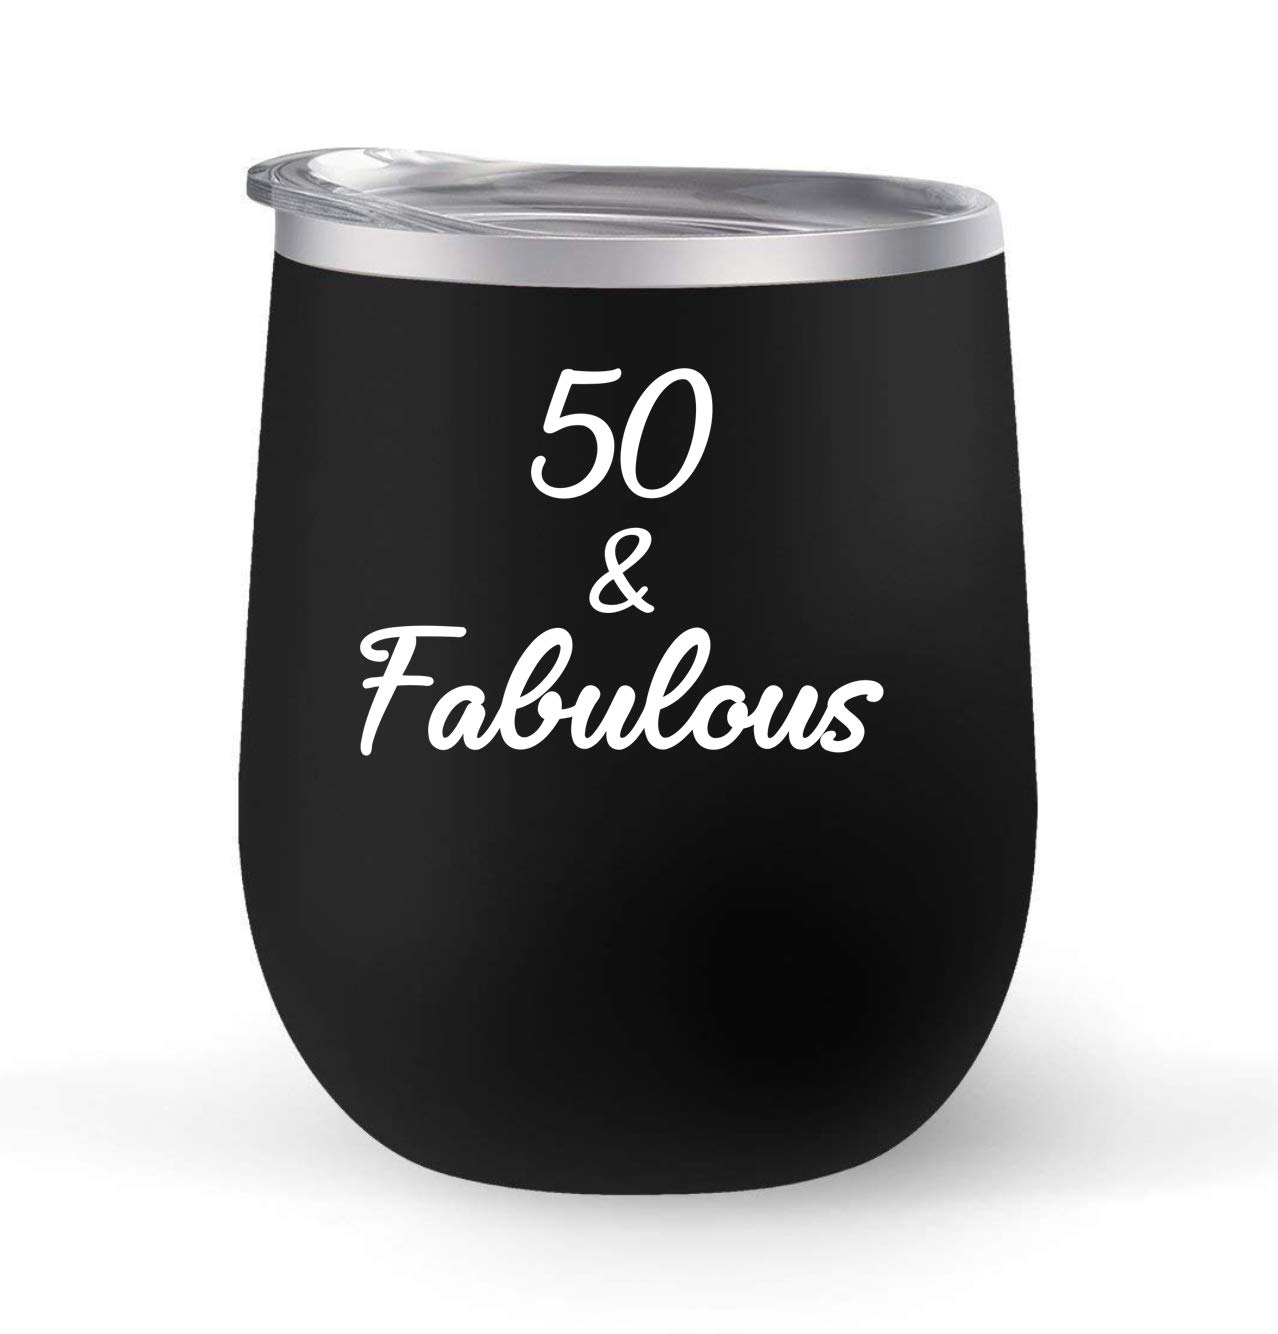 Premier Maars Brand 12oz insulated cup keeps drinks cold or hot Perfect gift For 50th Birthday 50 and Fabulous Choose your cup color /& create a personalized tumbler for Wine Water Coffee /& more